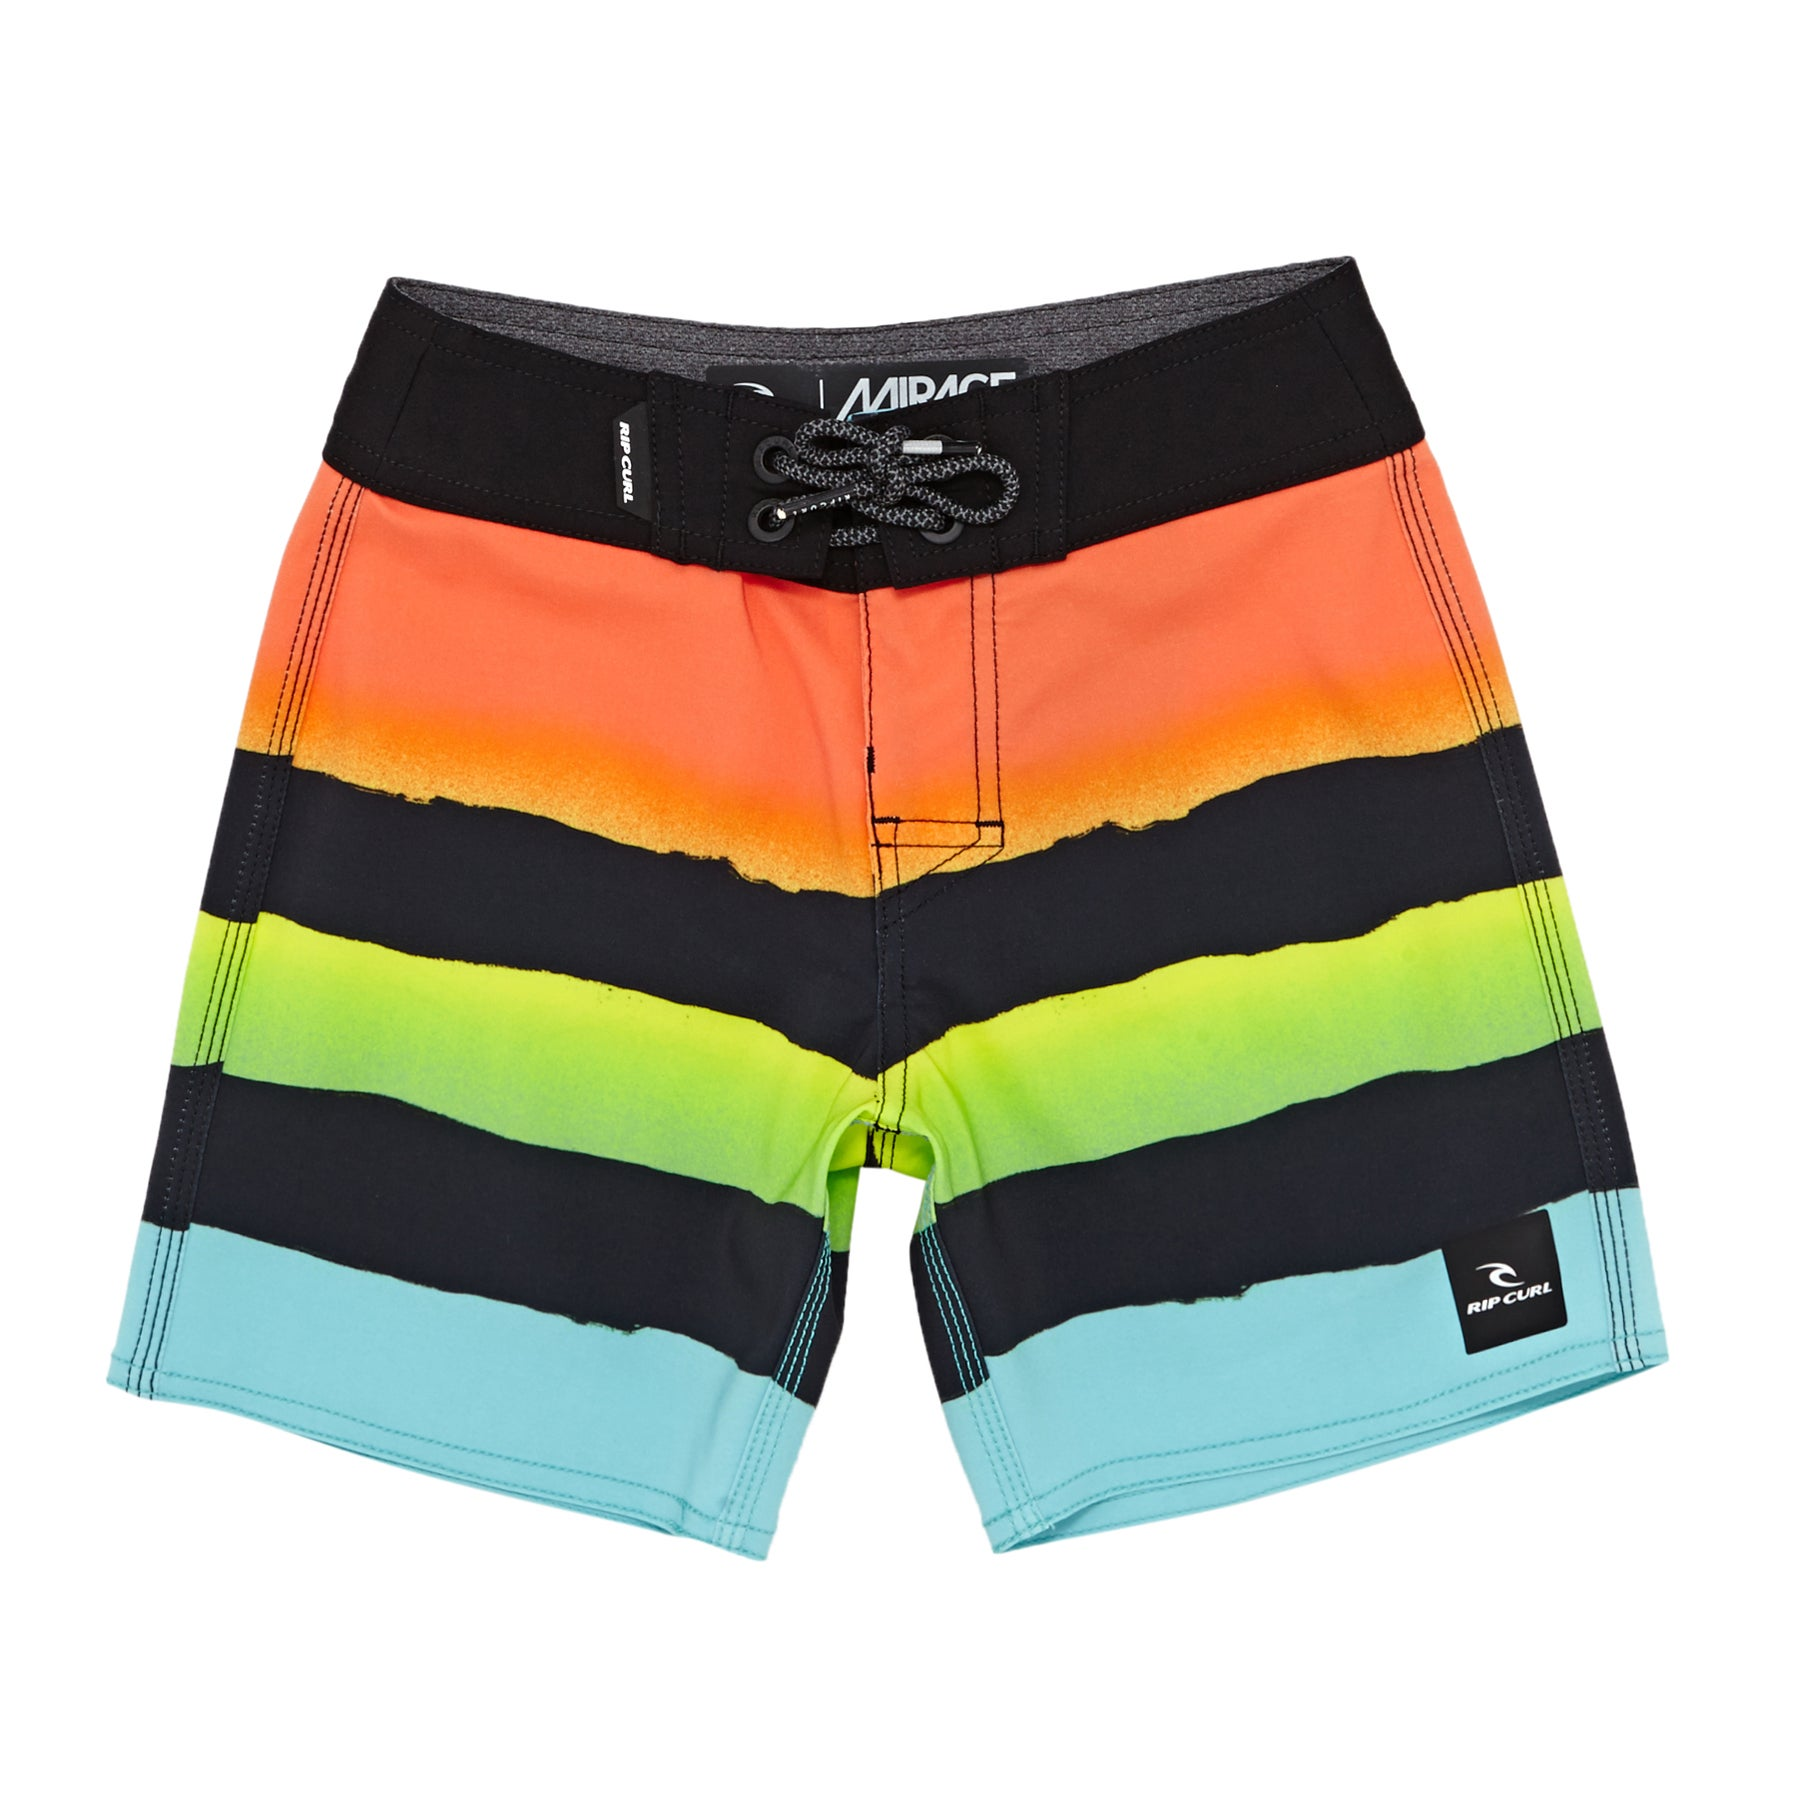 Boardshort Rip Curl Mirage Blowout Groms 12in - Aqua